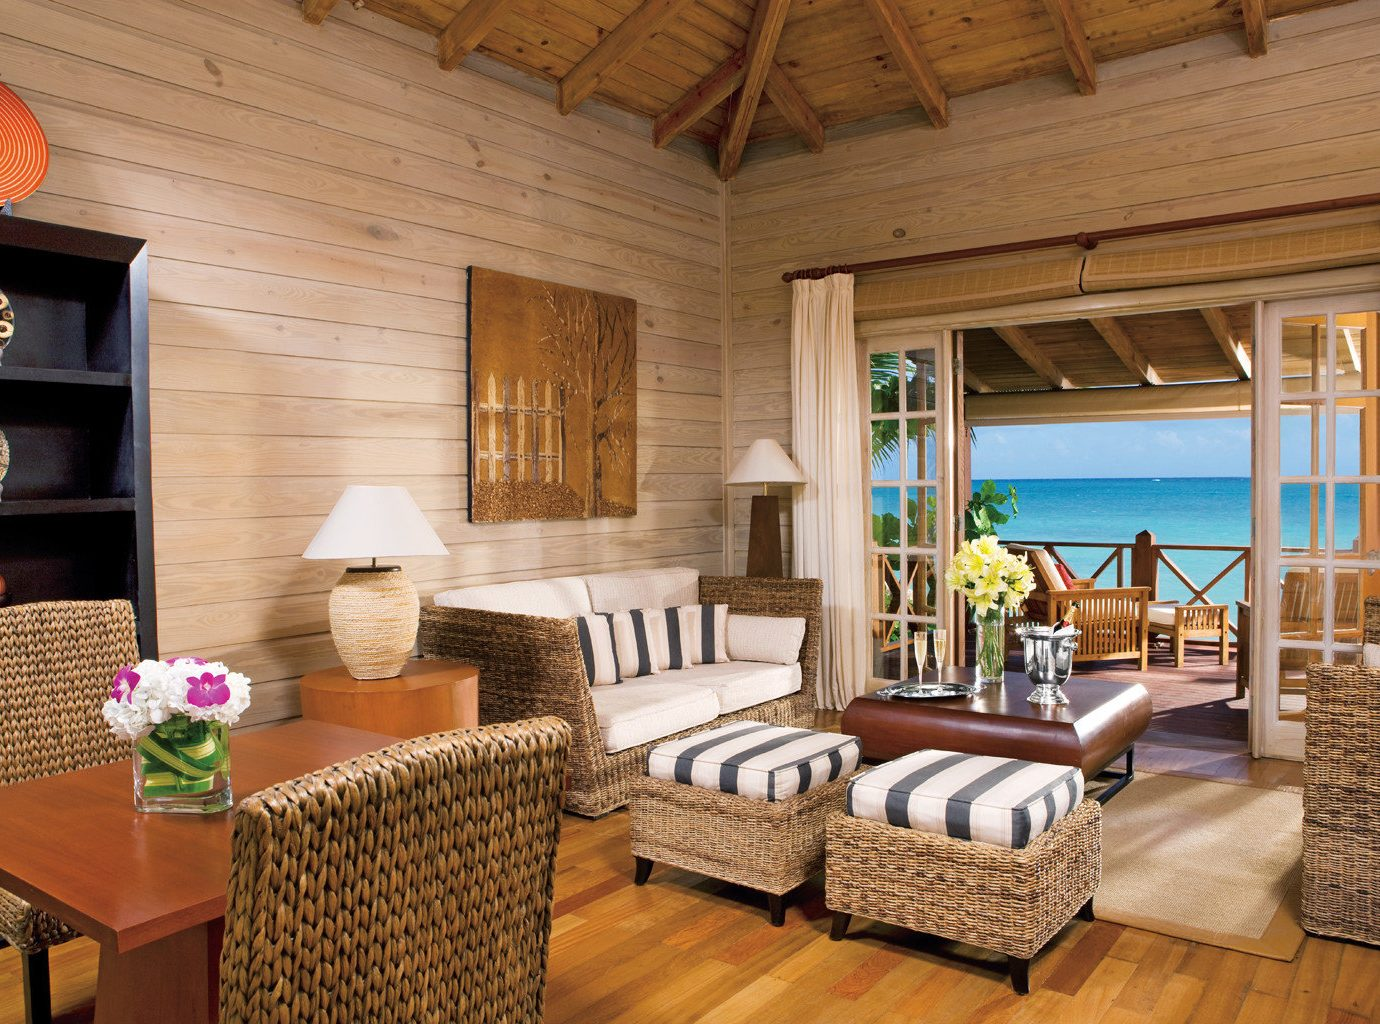 Beachfront Bedroom At Sanctuary Cap Cana, Dr, An All Inclusive Resort For Adults